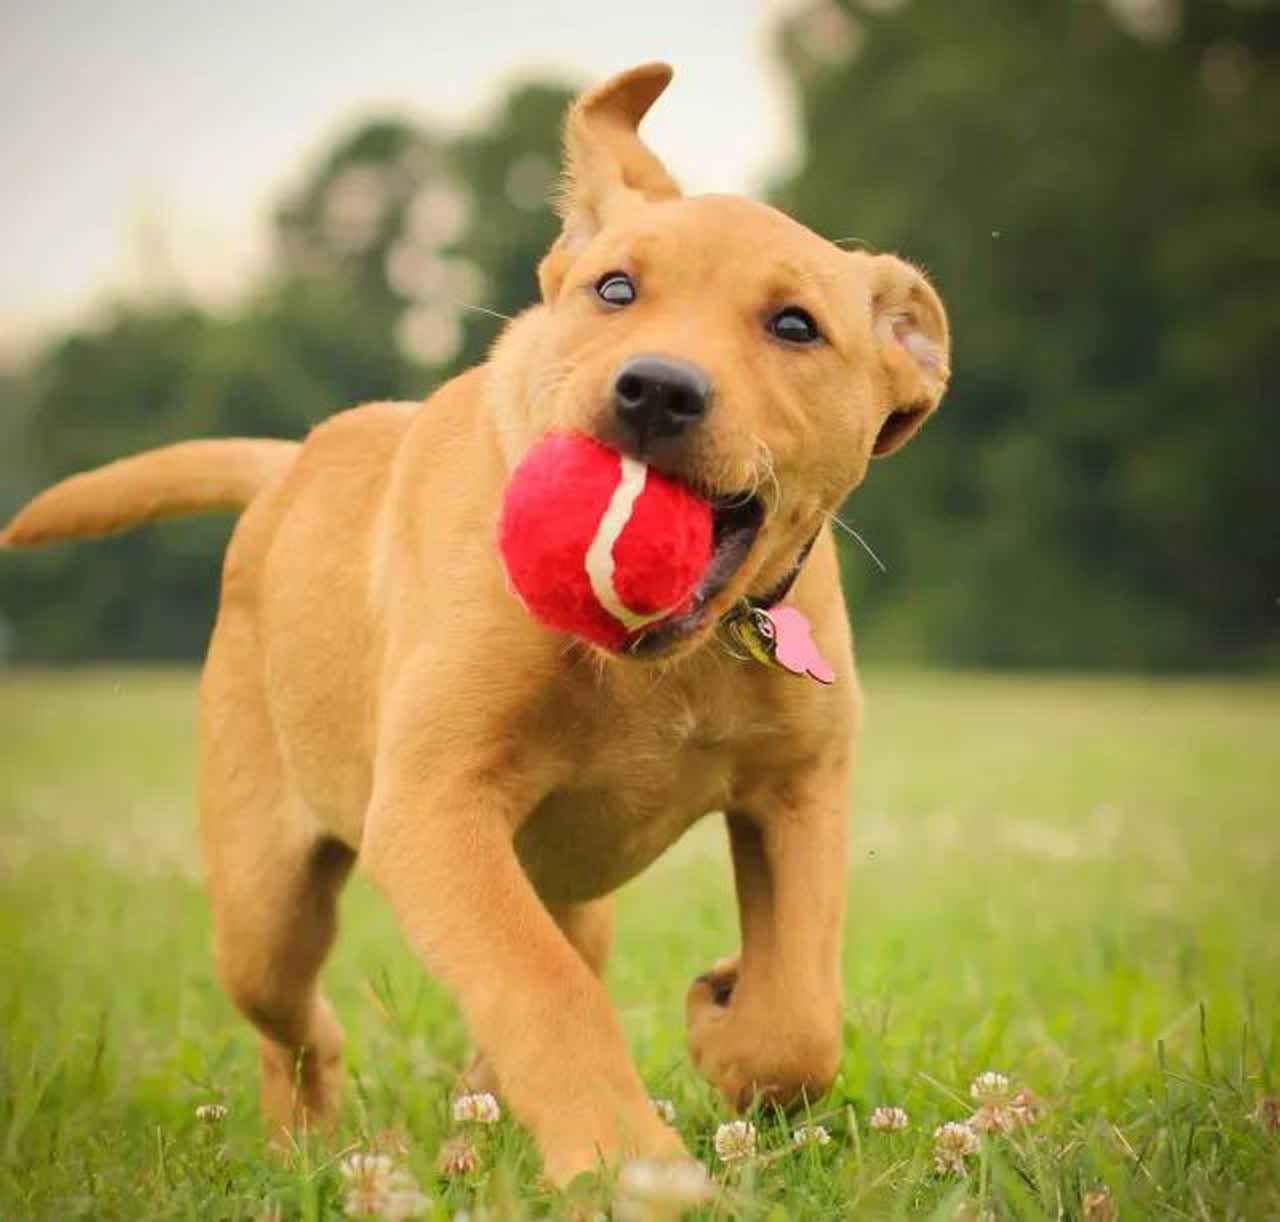 Labrabull puppy running with a red tennis ball in its mouth.